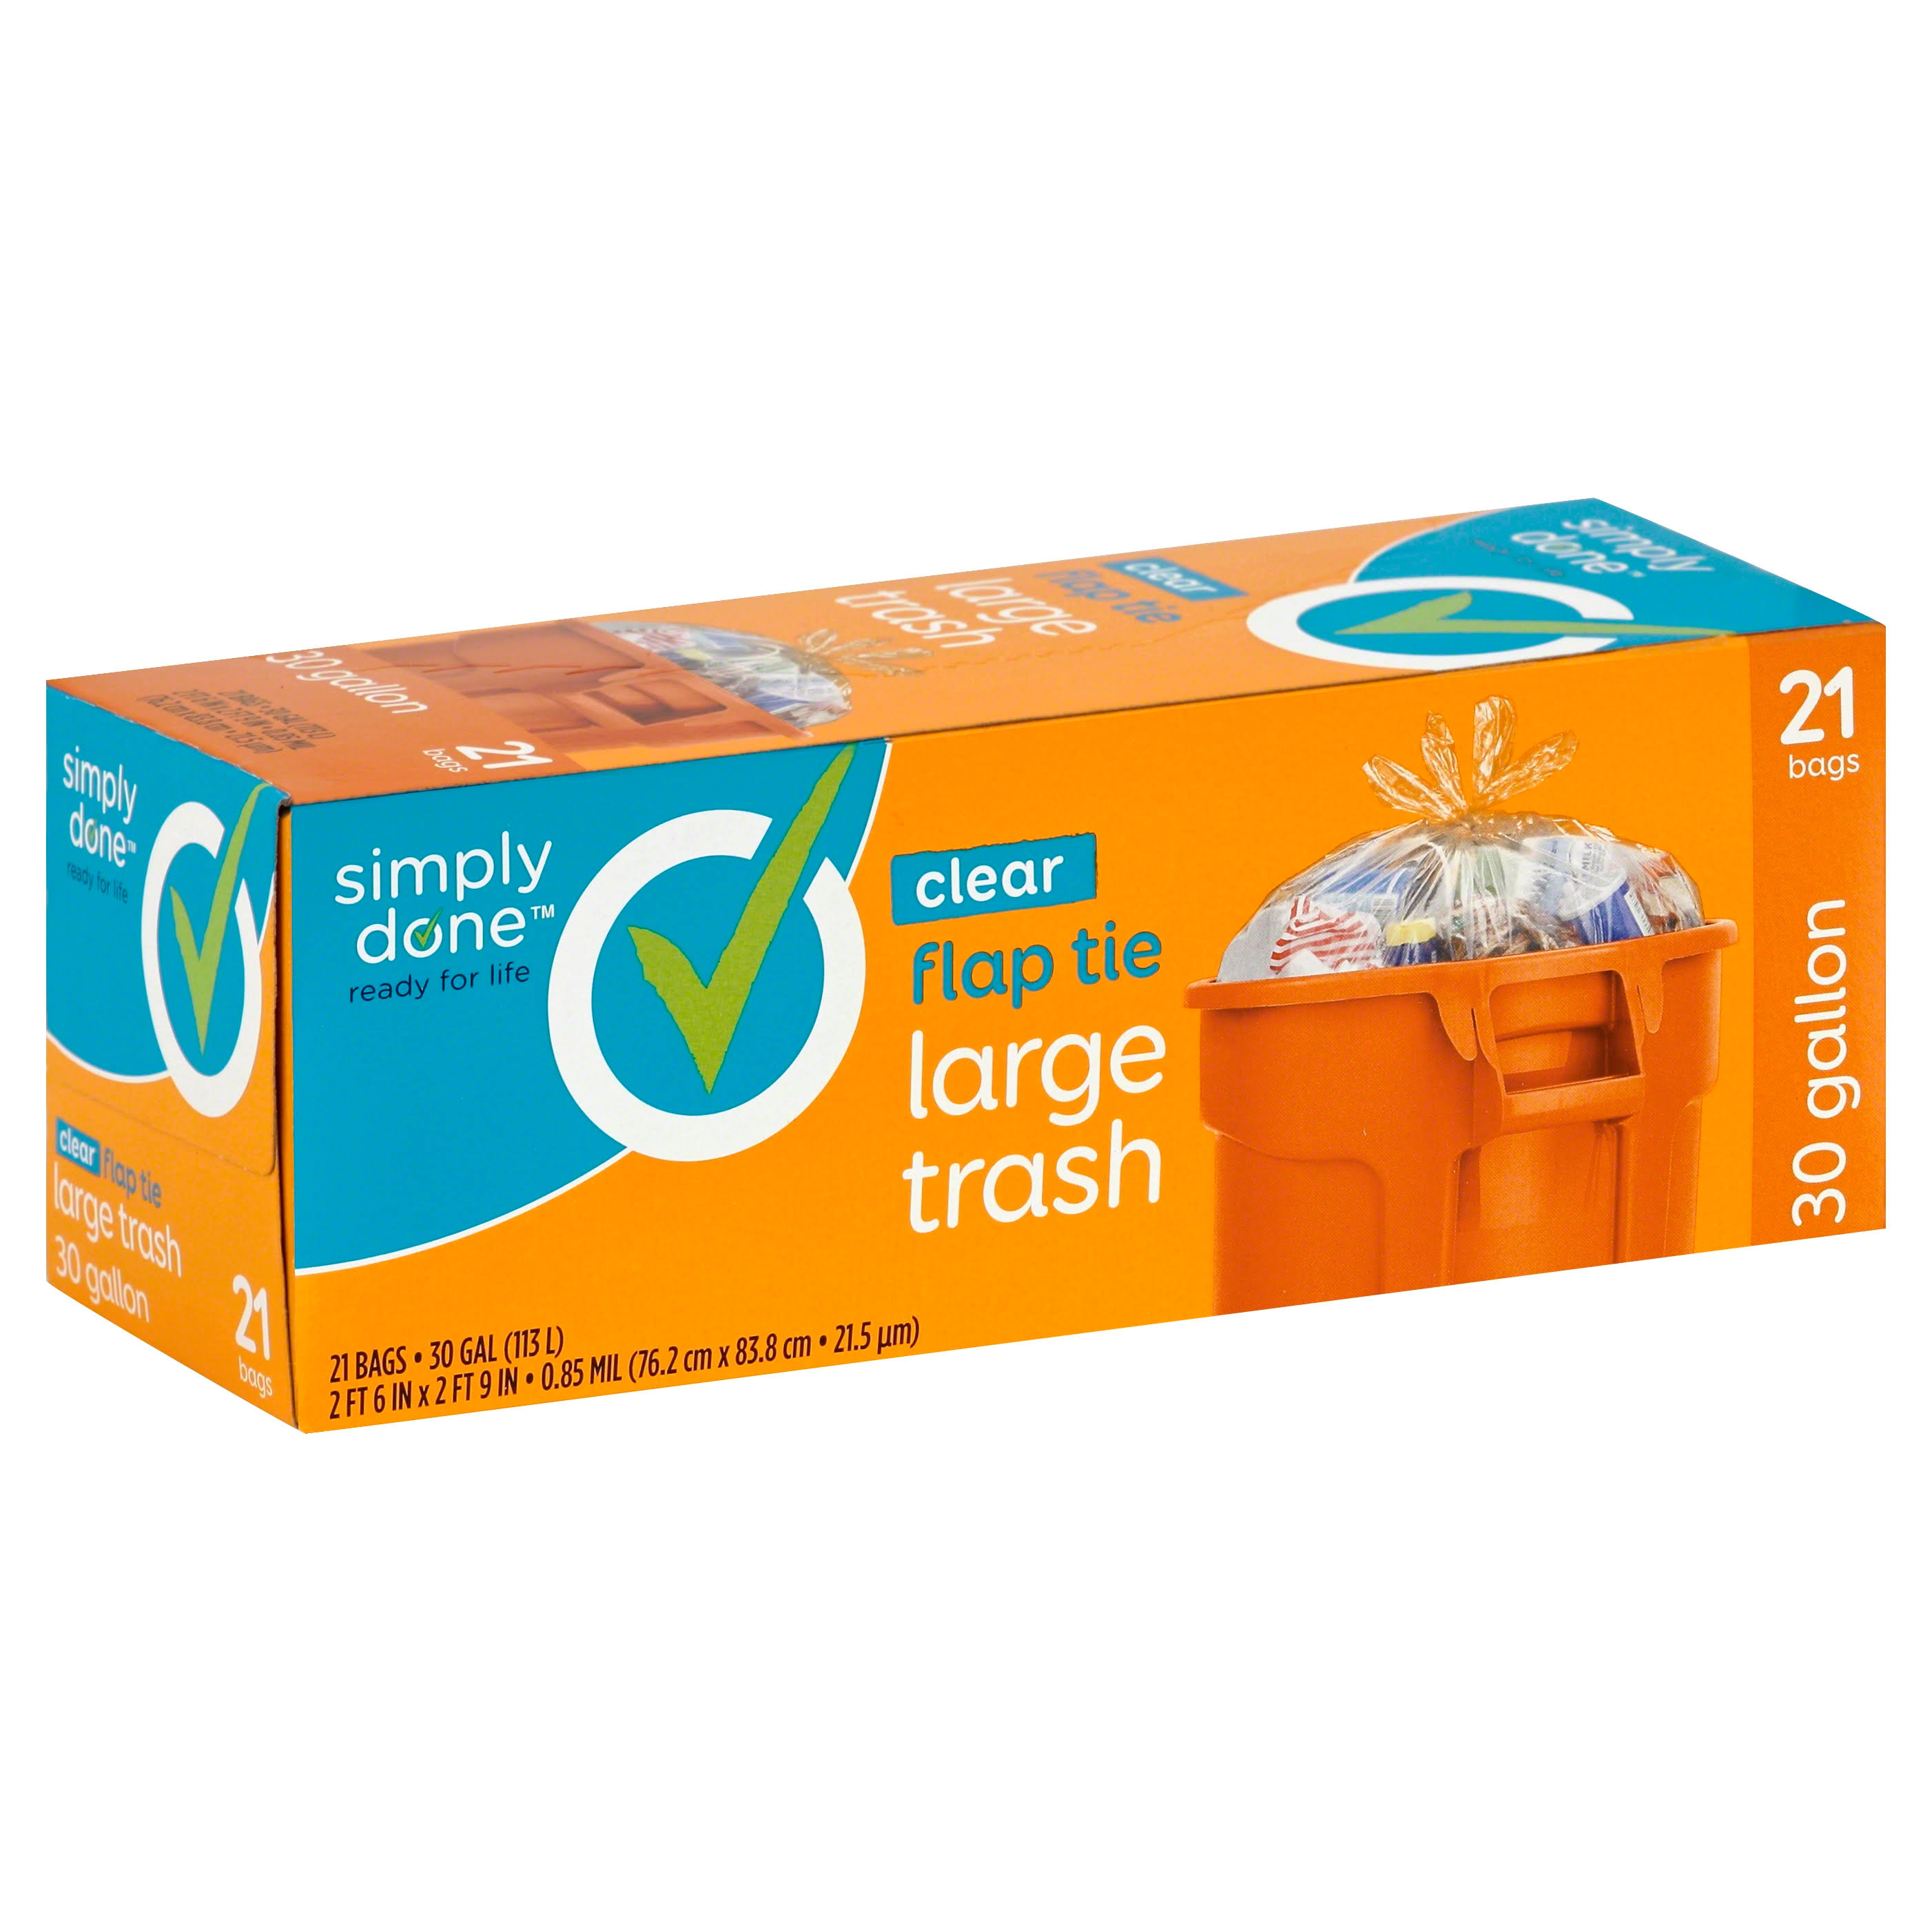 Simply Done Trash Bags, Flap Tie, Large, Clear, 30 Gallon - 21 bags